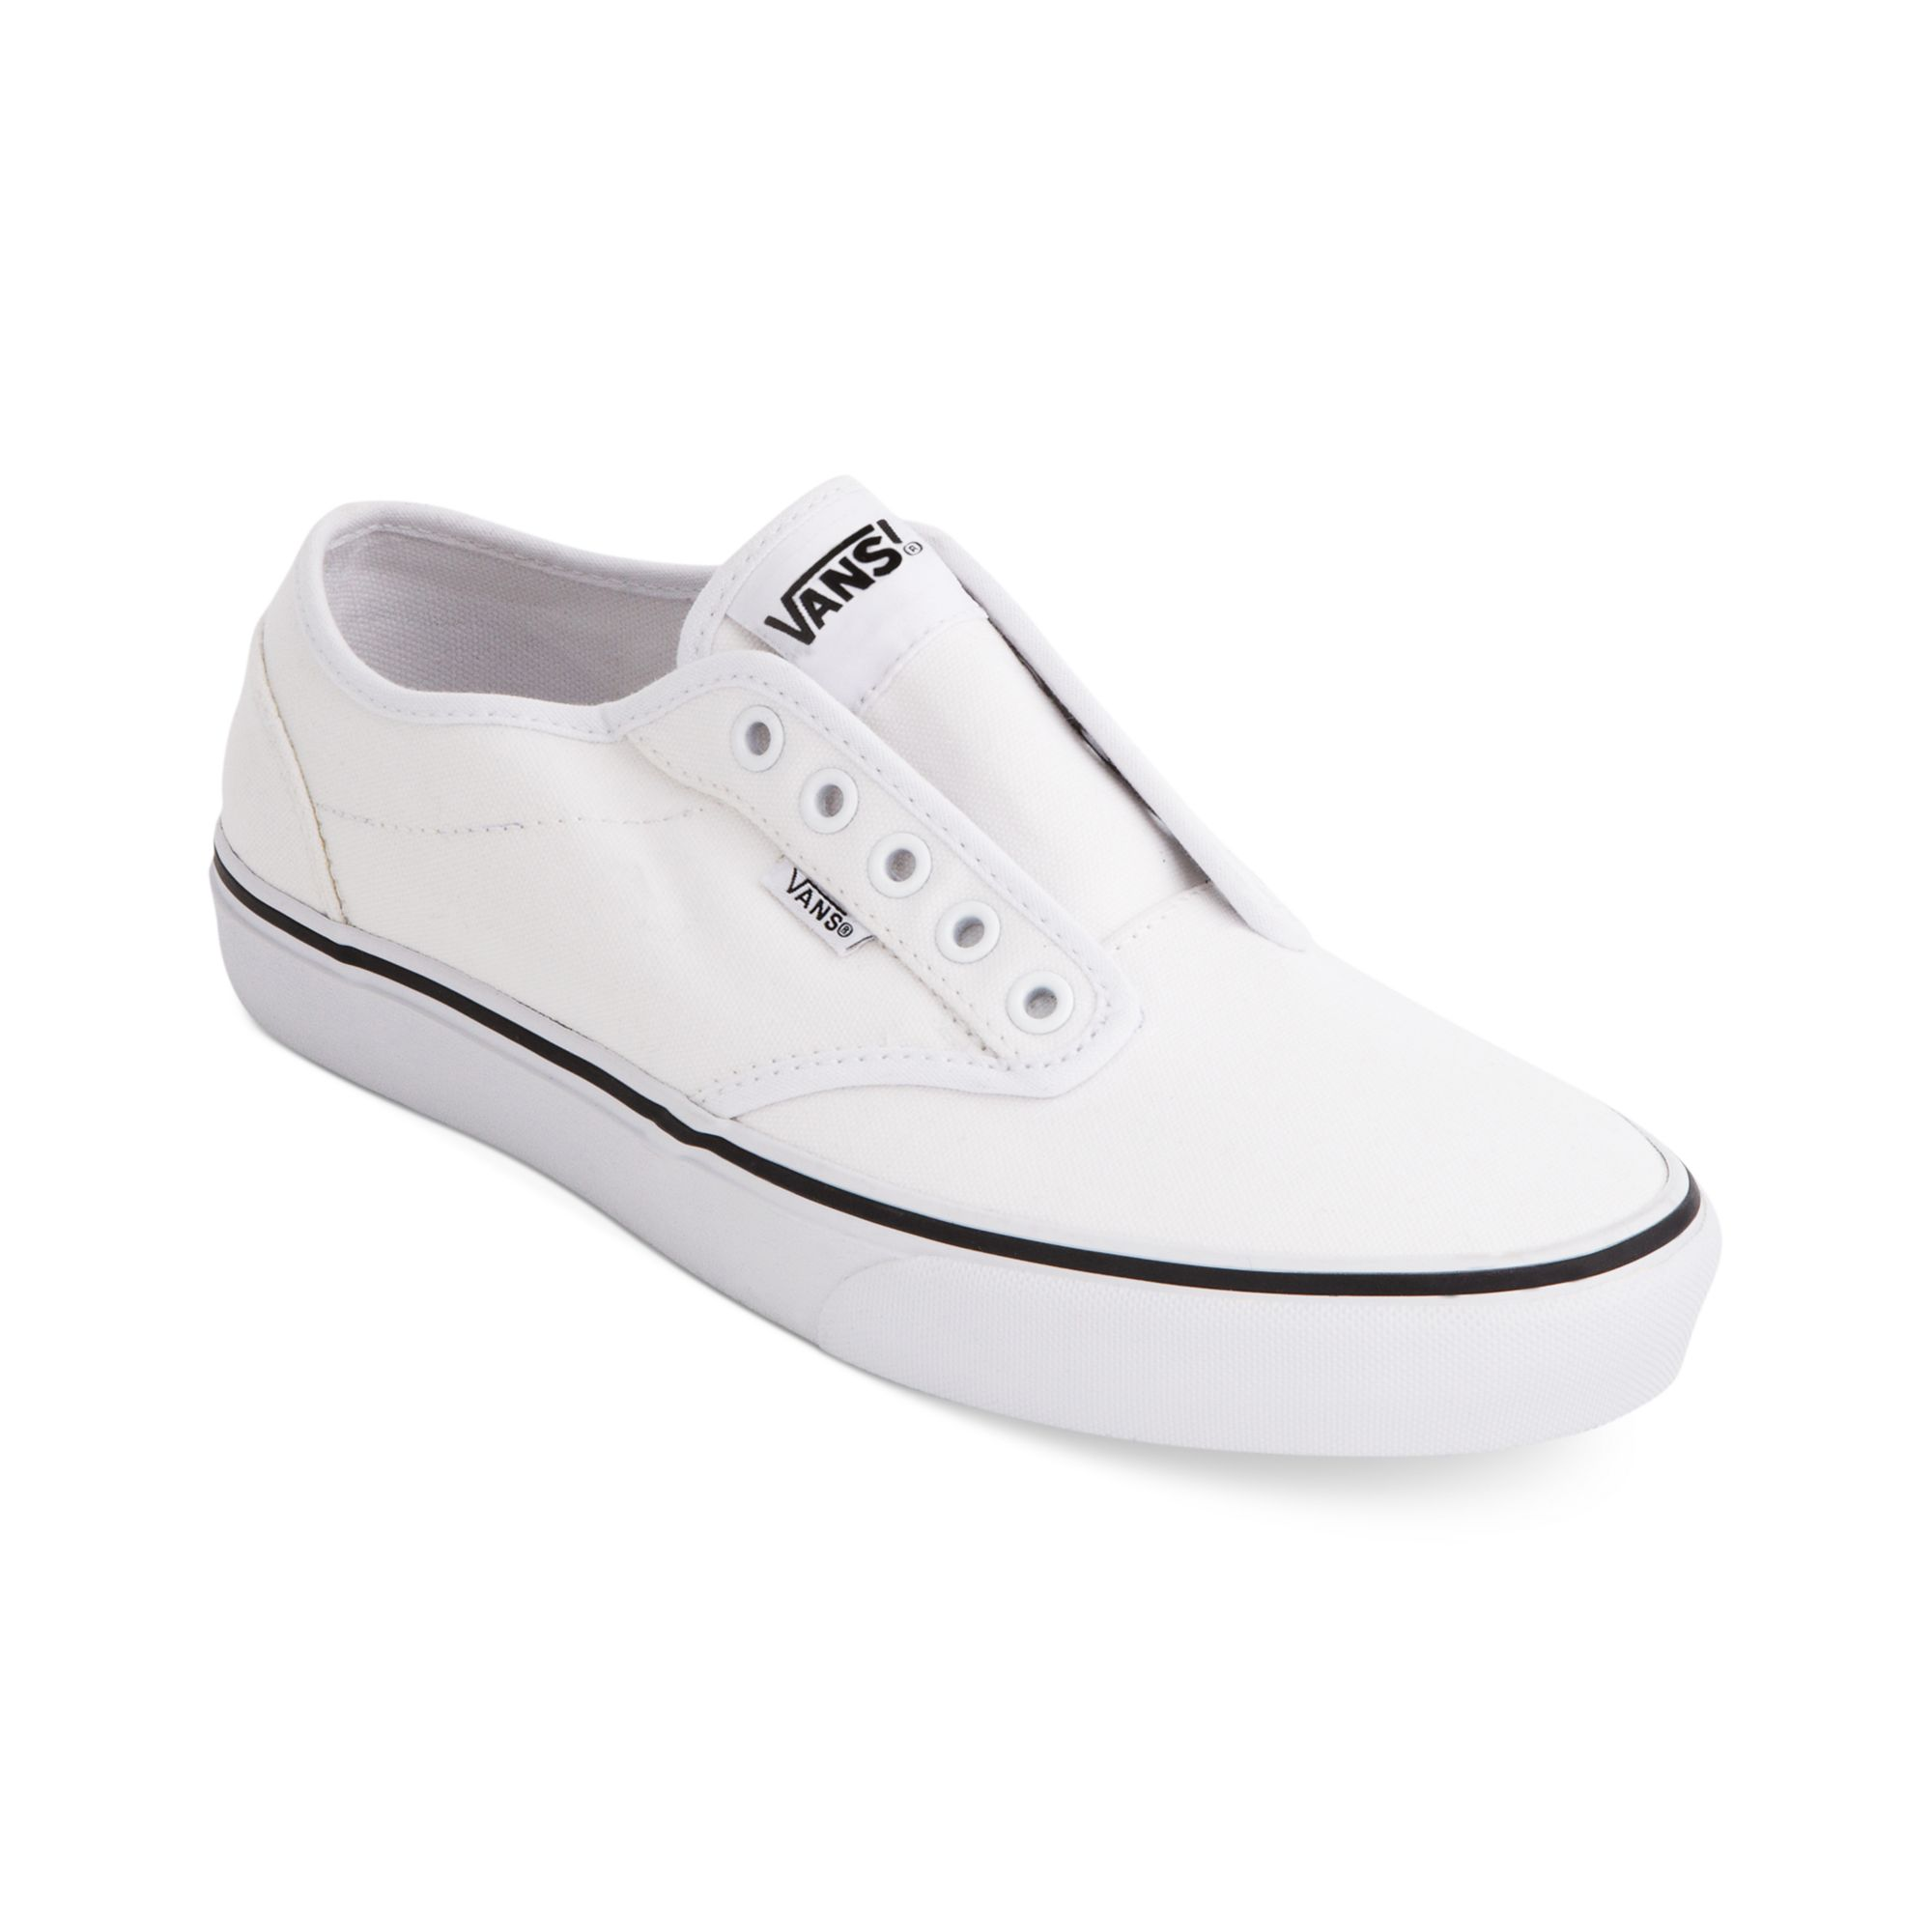 vans atwood slip-on sneaker - mens